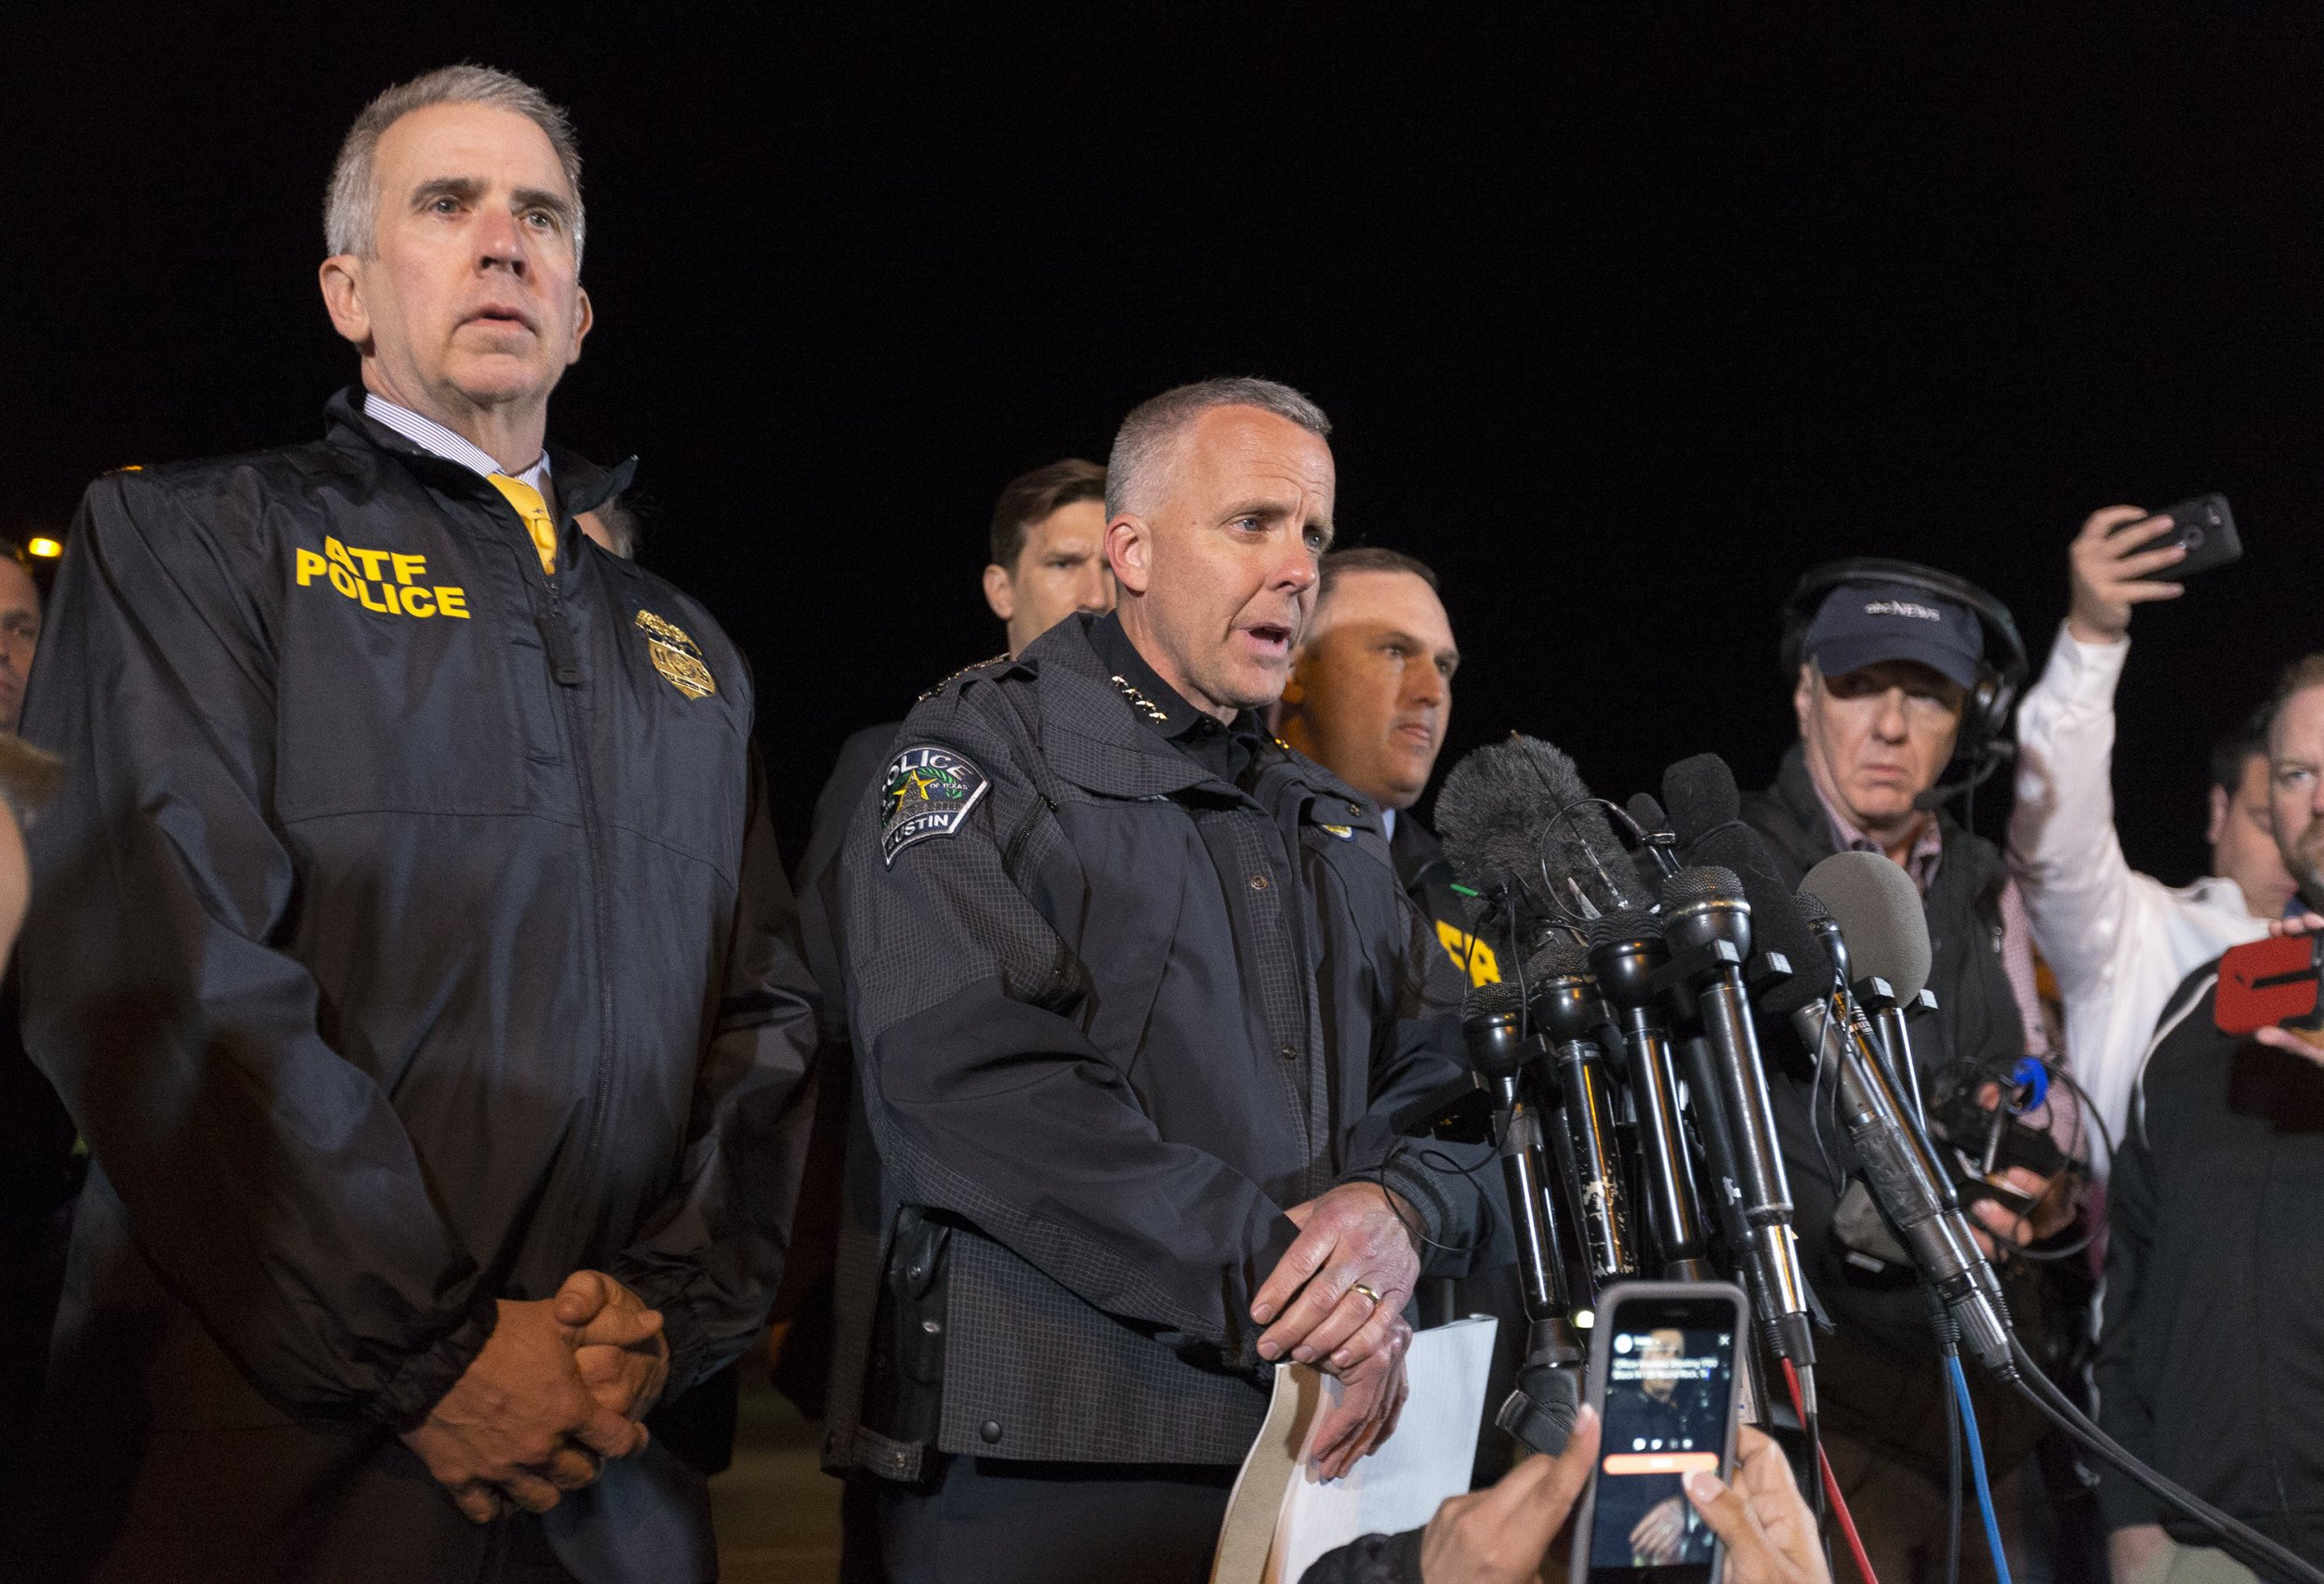 epa06617186 ATF Agent in Charge Fred Milanowski (L) and Interim Austin Police Chief Brian Manley (C) speak to the media as law enforcement investigates the scene where a bombing suspect allegedly blew himself up after being confronted by police in Round Rock, Texas, USA, 21 March 2018. The bombing suspect was identified by police and according to media reports he allegedly blew himself up after being confronted by police after being sought in connection with more than five bombings across the Austin, Texas area. EPA/STEPHEN SPILLMAN